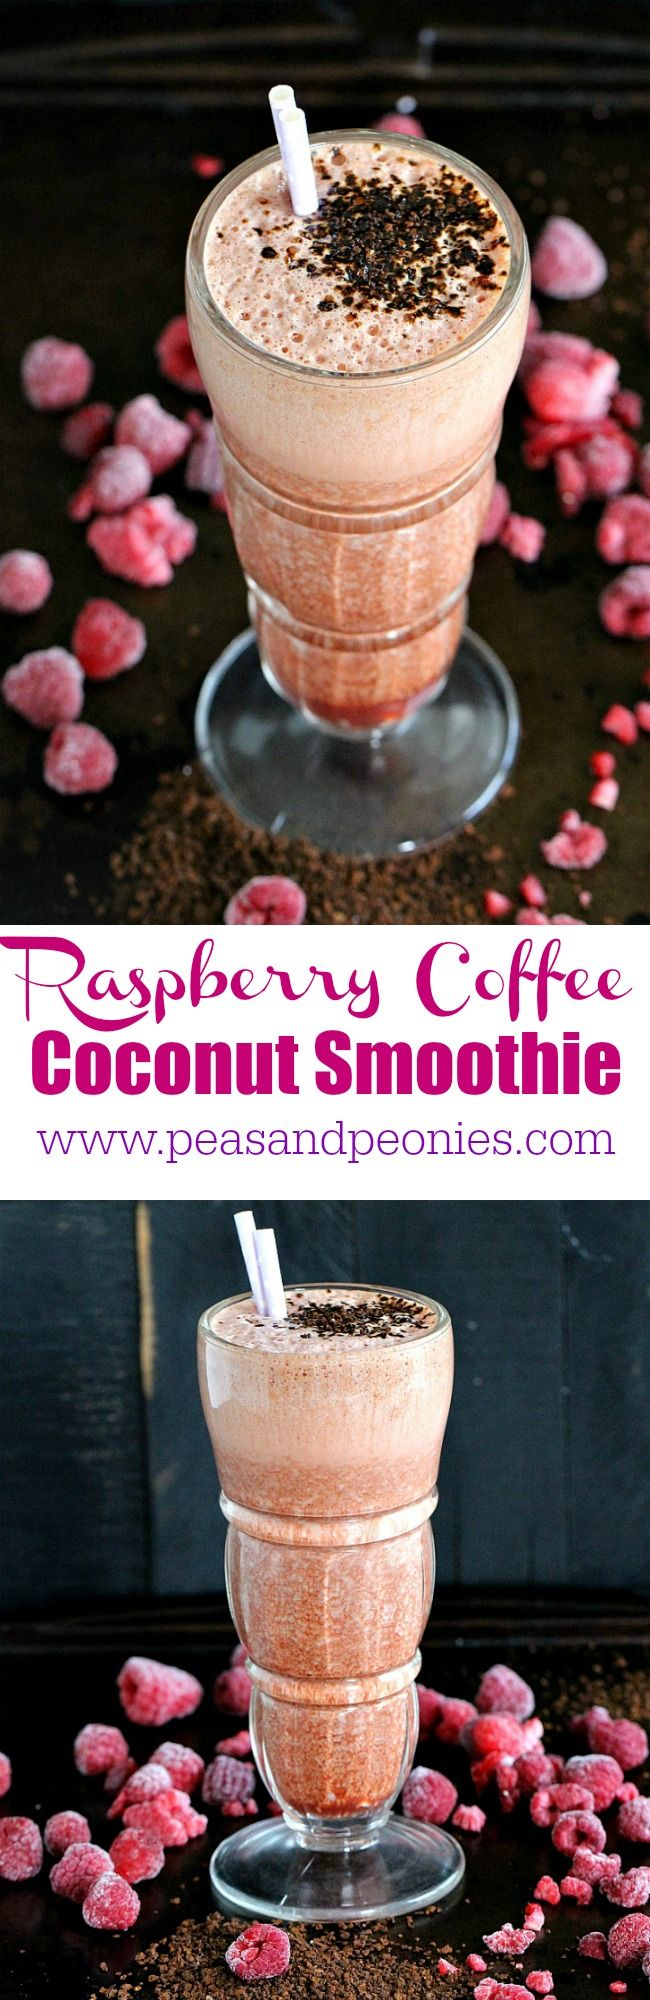 Raspberry Coffee Smoothie made with delicious chilled coffee, frozen raspberries and creamy coconut milk, is the perfect pick me up treat.